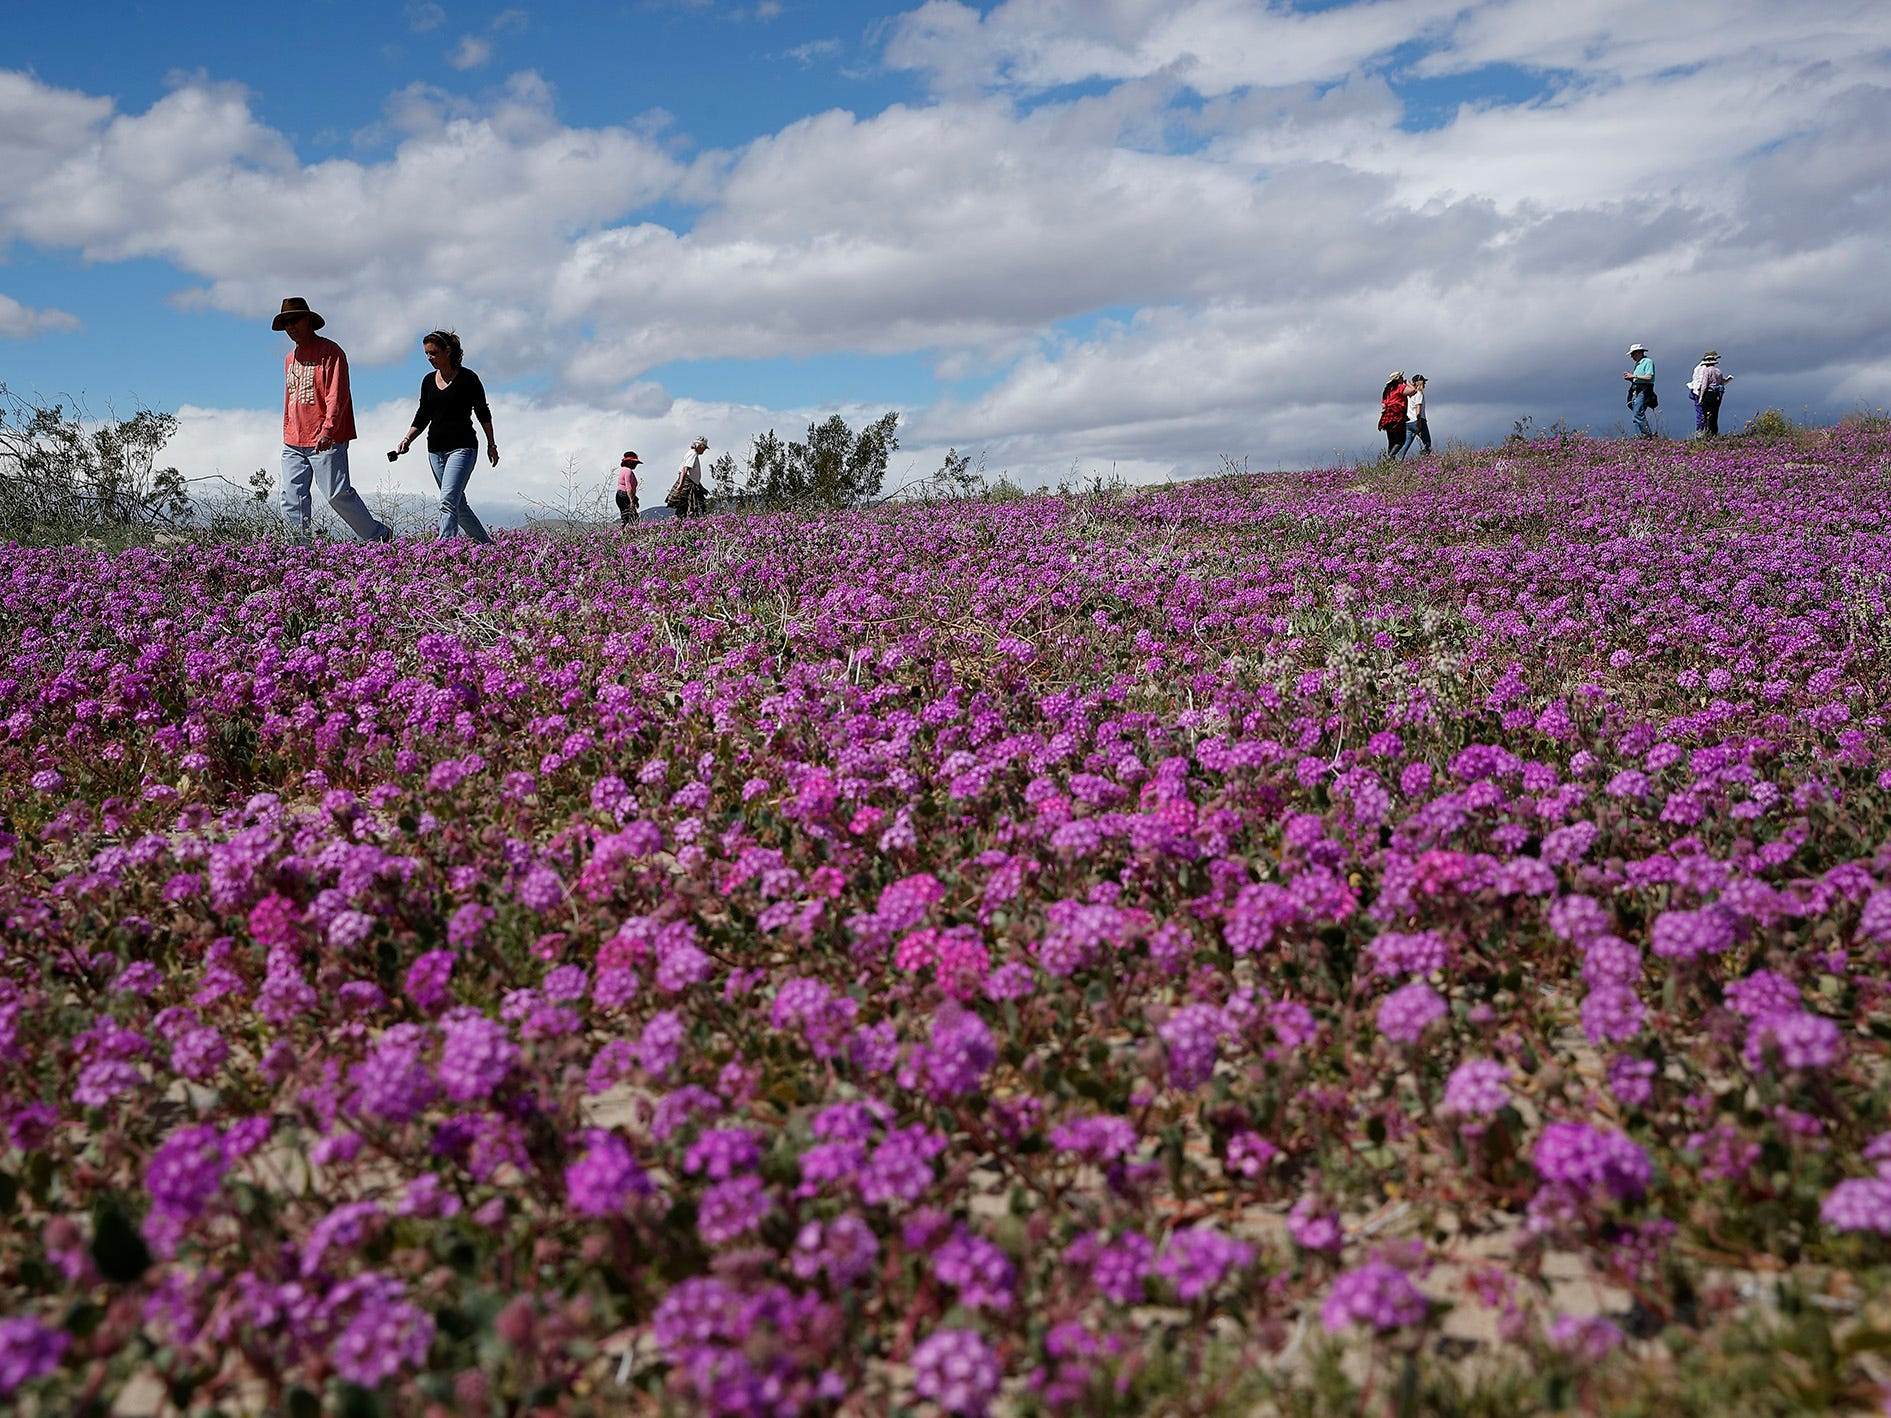 """People walk among wildflowers in bloom near Borrego Springs, Calif. March 6, 2019. Two years after steady rains sparked seeds dormant for decades under the desert floor to burst open and produce a spectacular display dubbed the """"super bloom,"""" another winter soaking this year is shaping up to be possibly even better."""